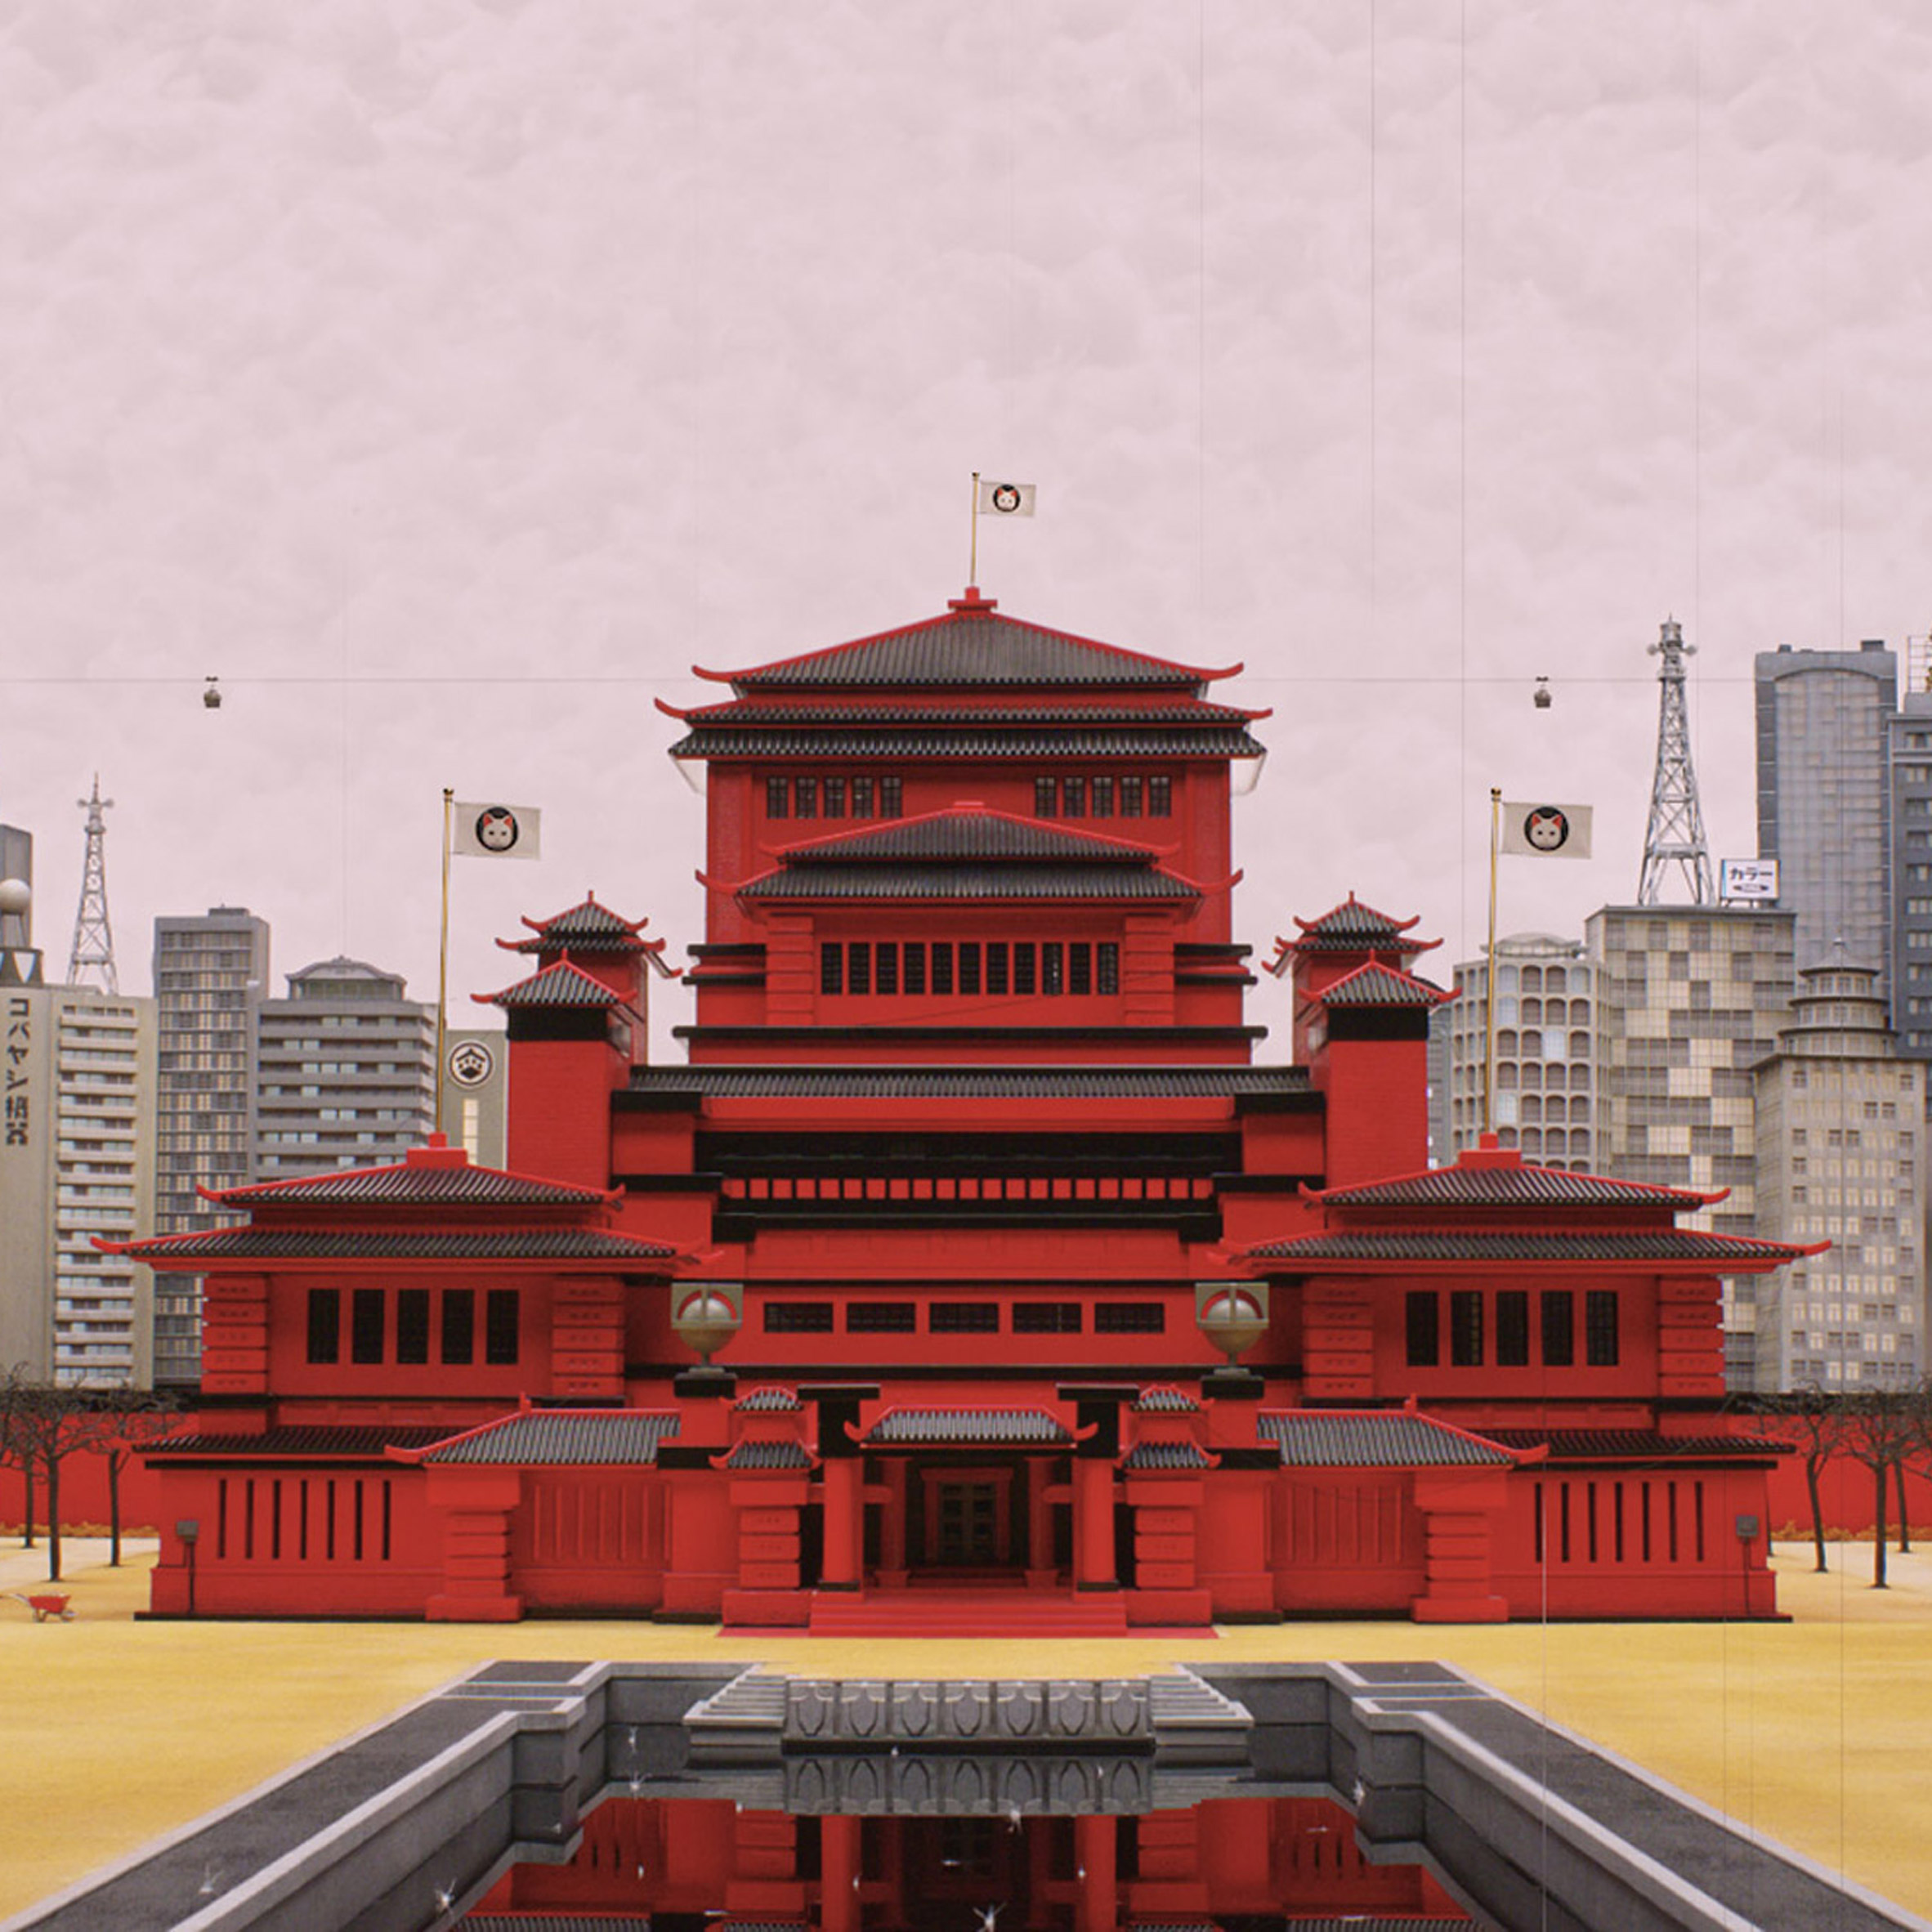 Dezeen interviewed the production designer from Wes Anderson's Isle of Dogs